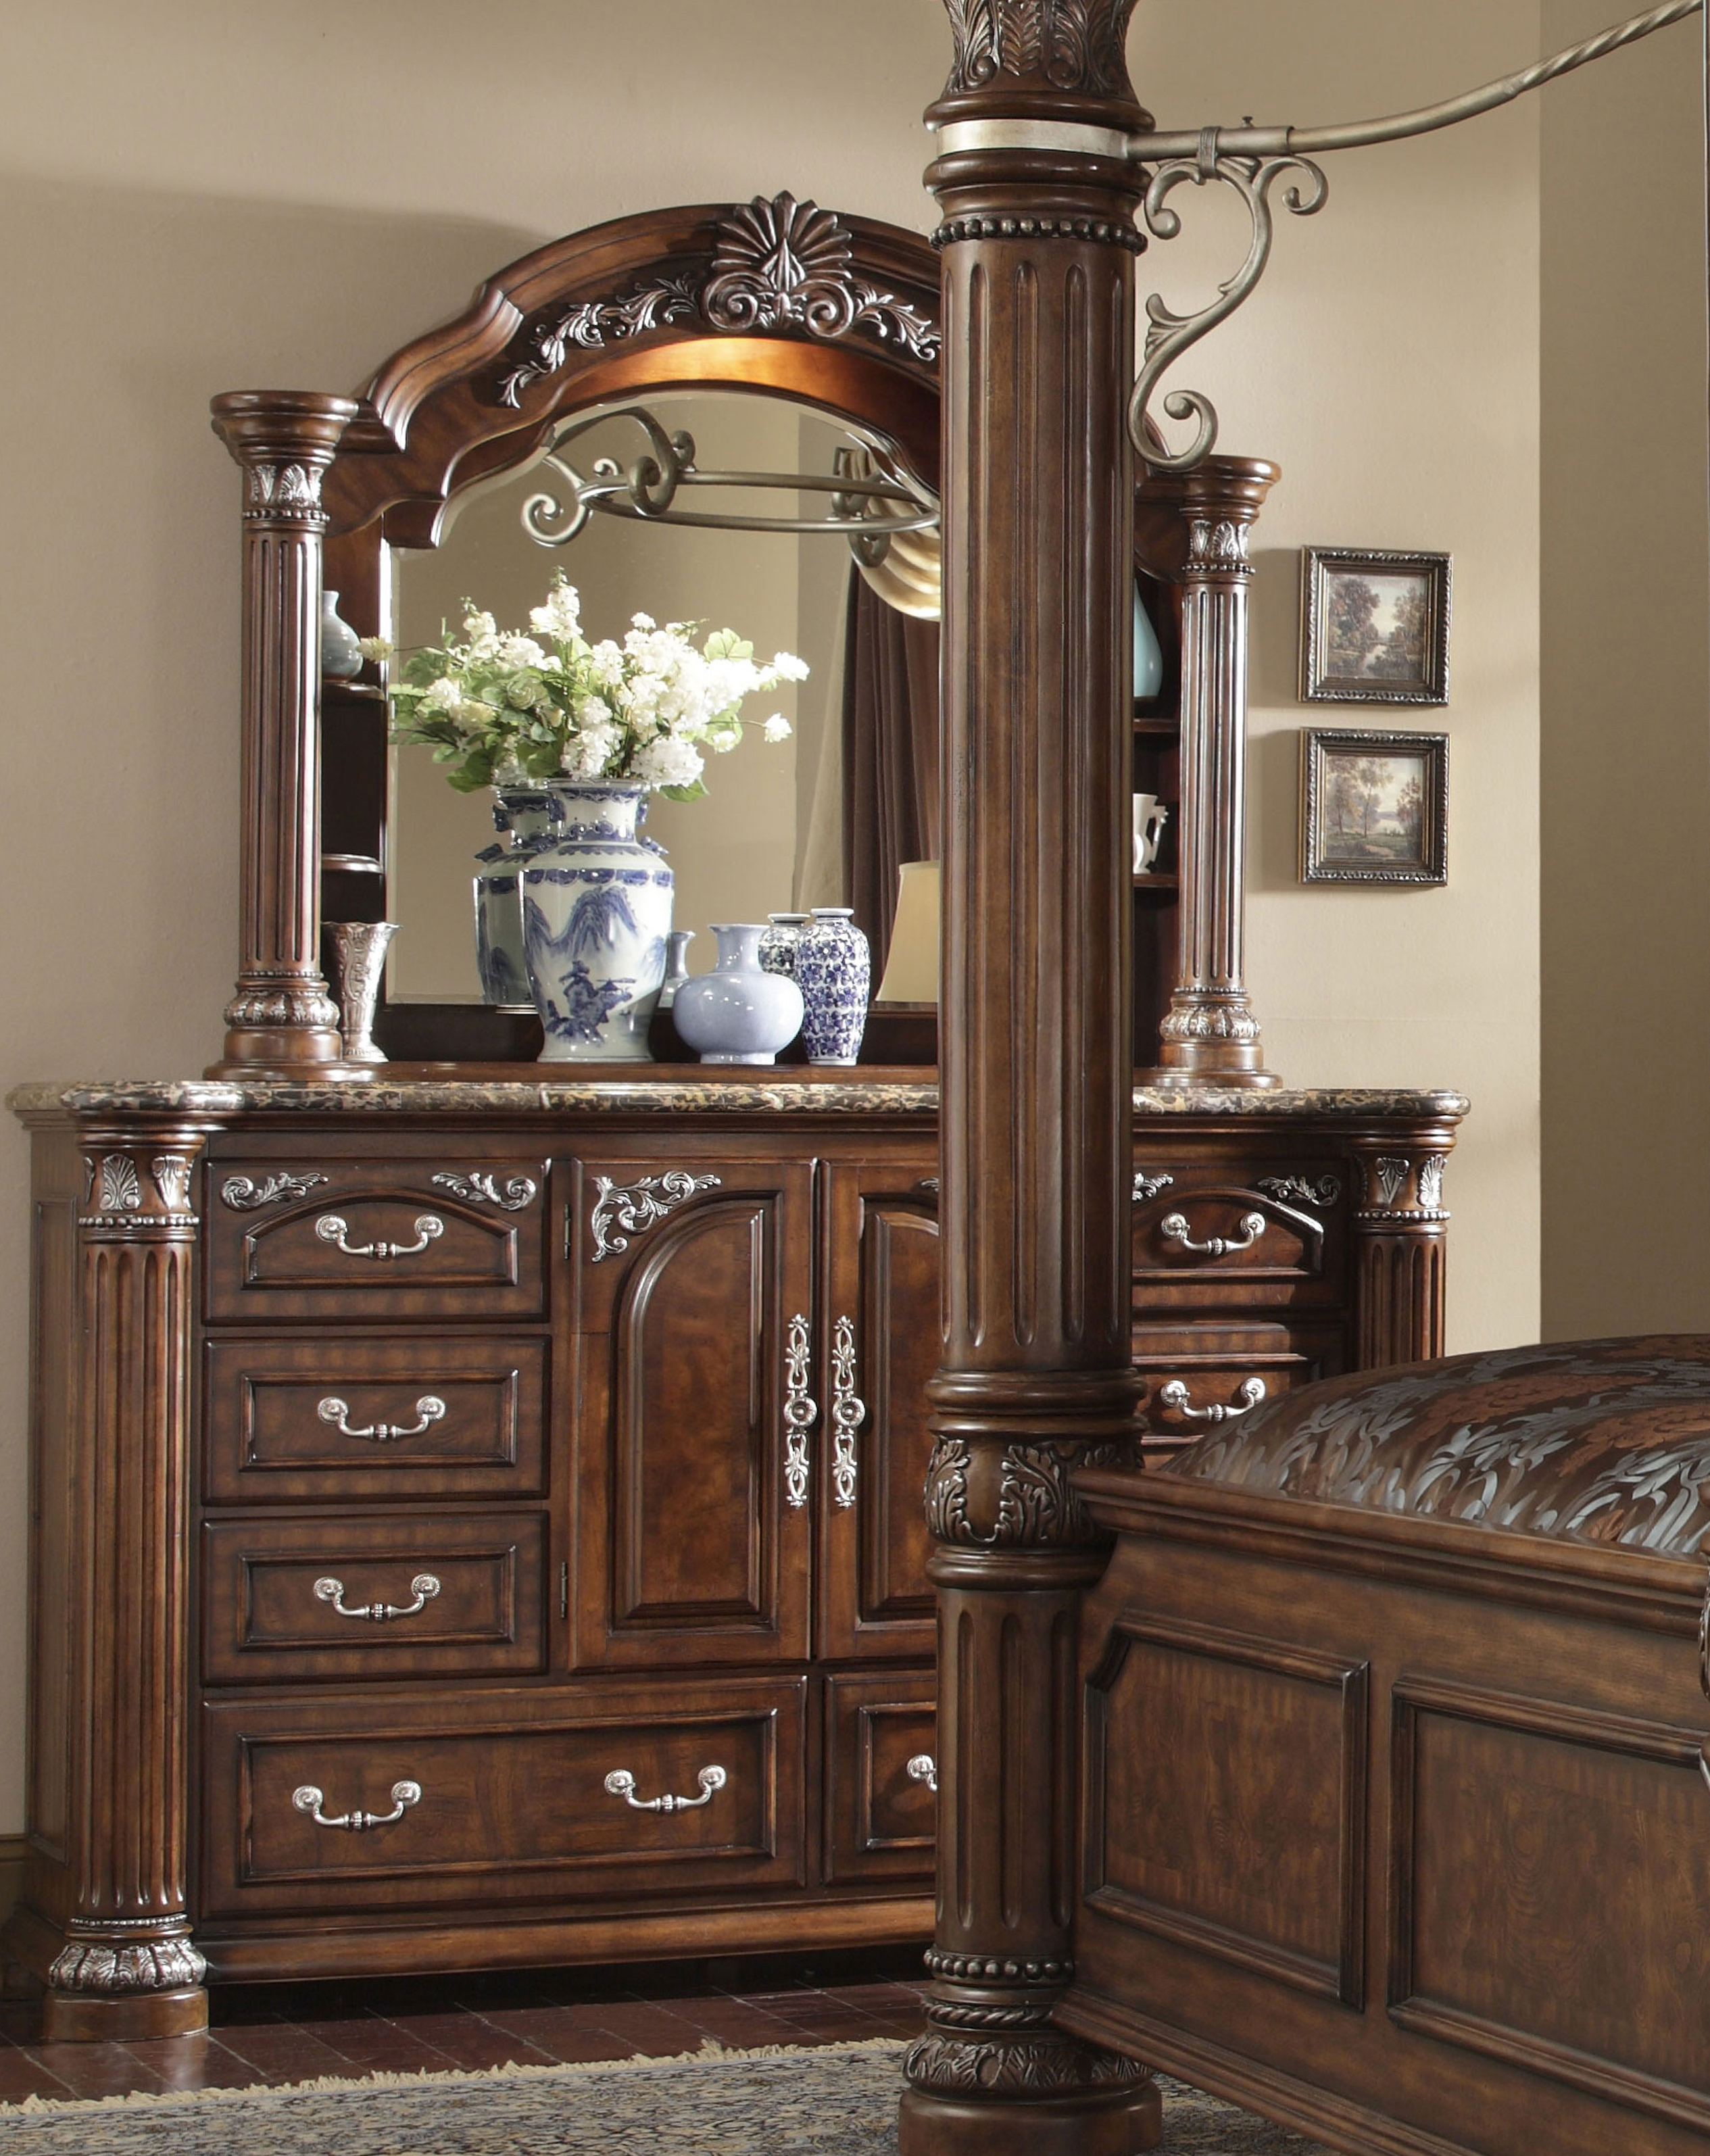 AICO Monte Carlo II Dresser and Mirror